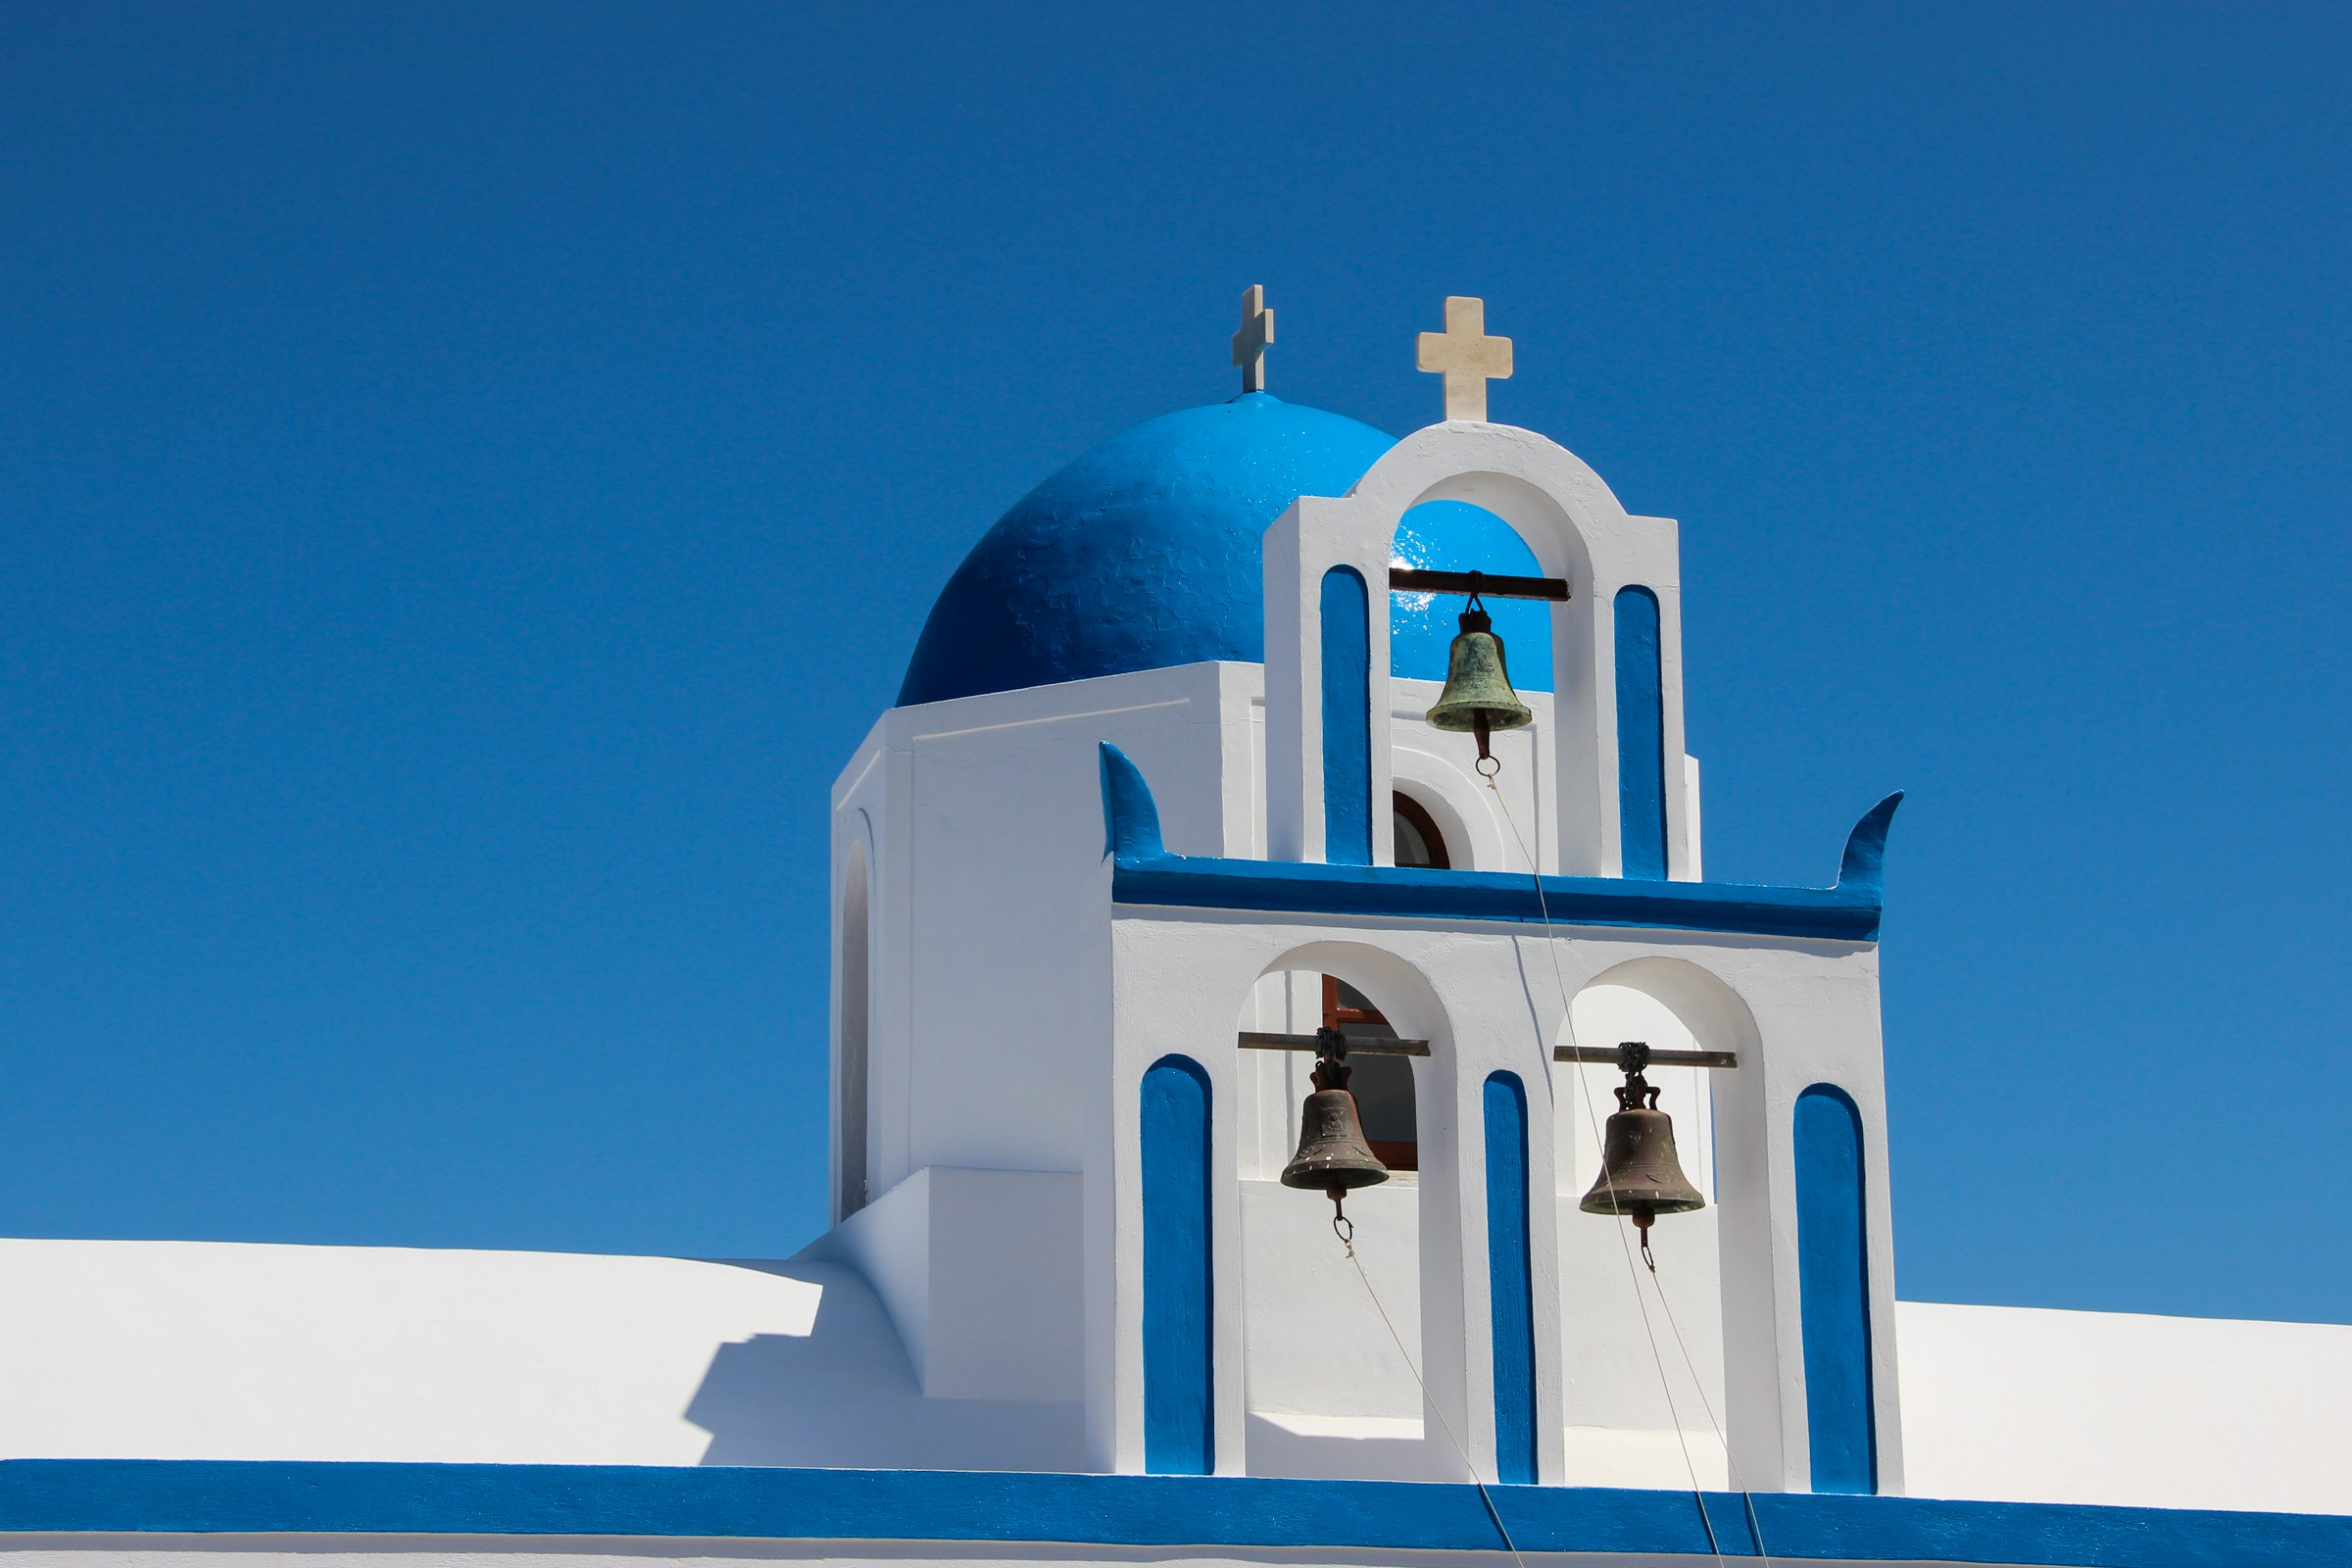 Church Bell Gable And Dome In Santorini Island